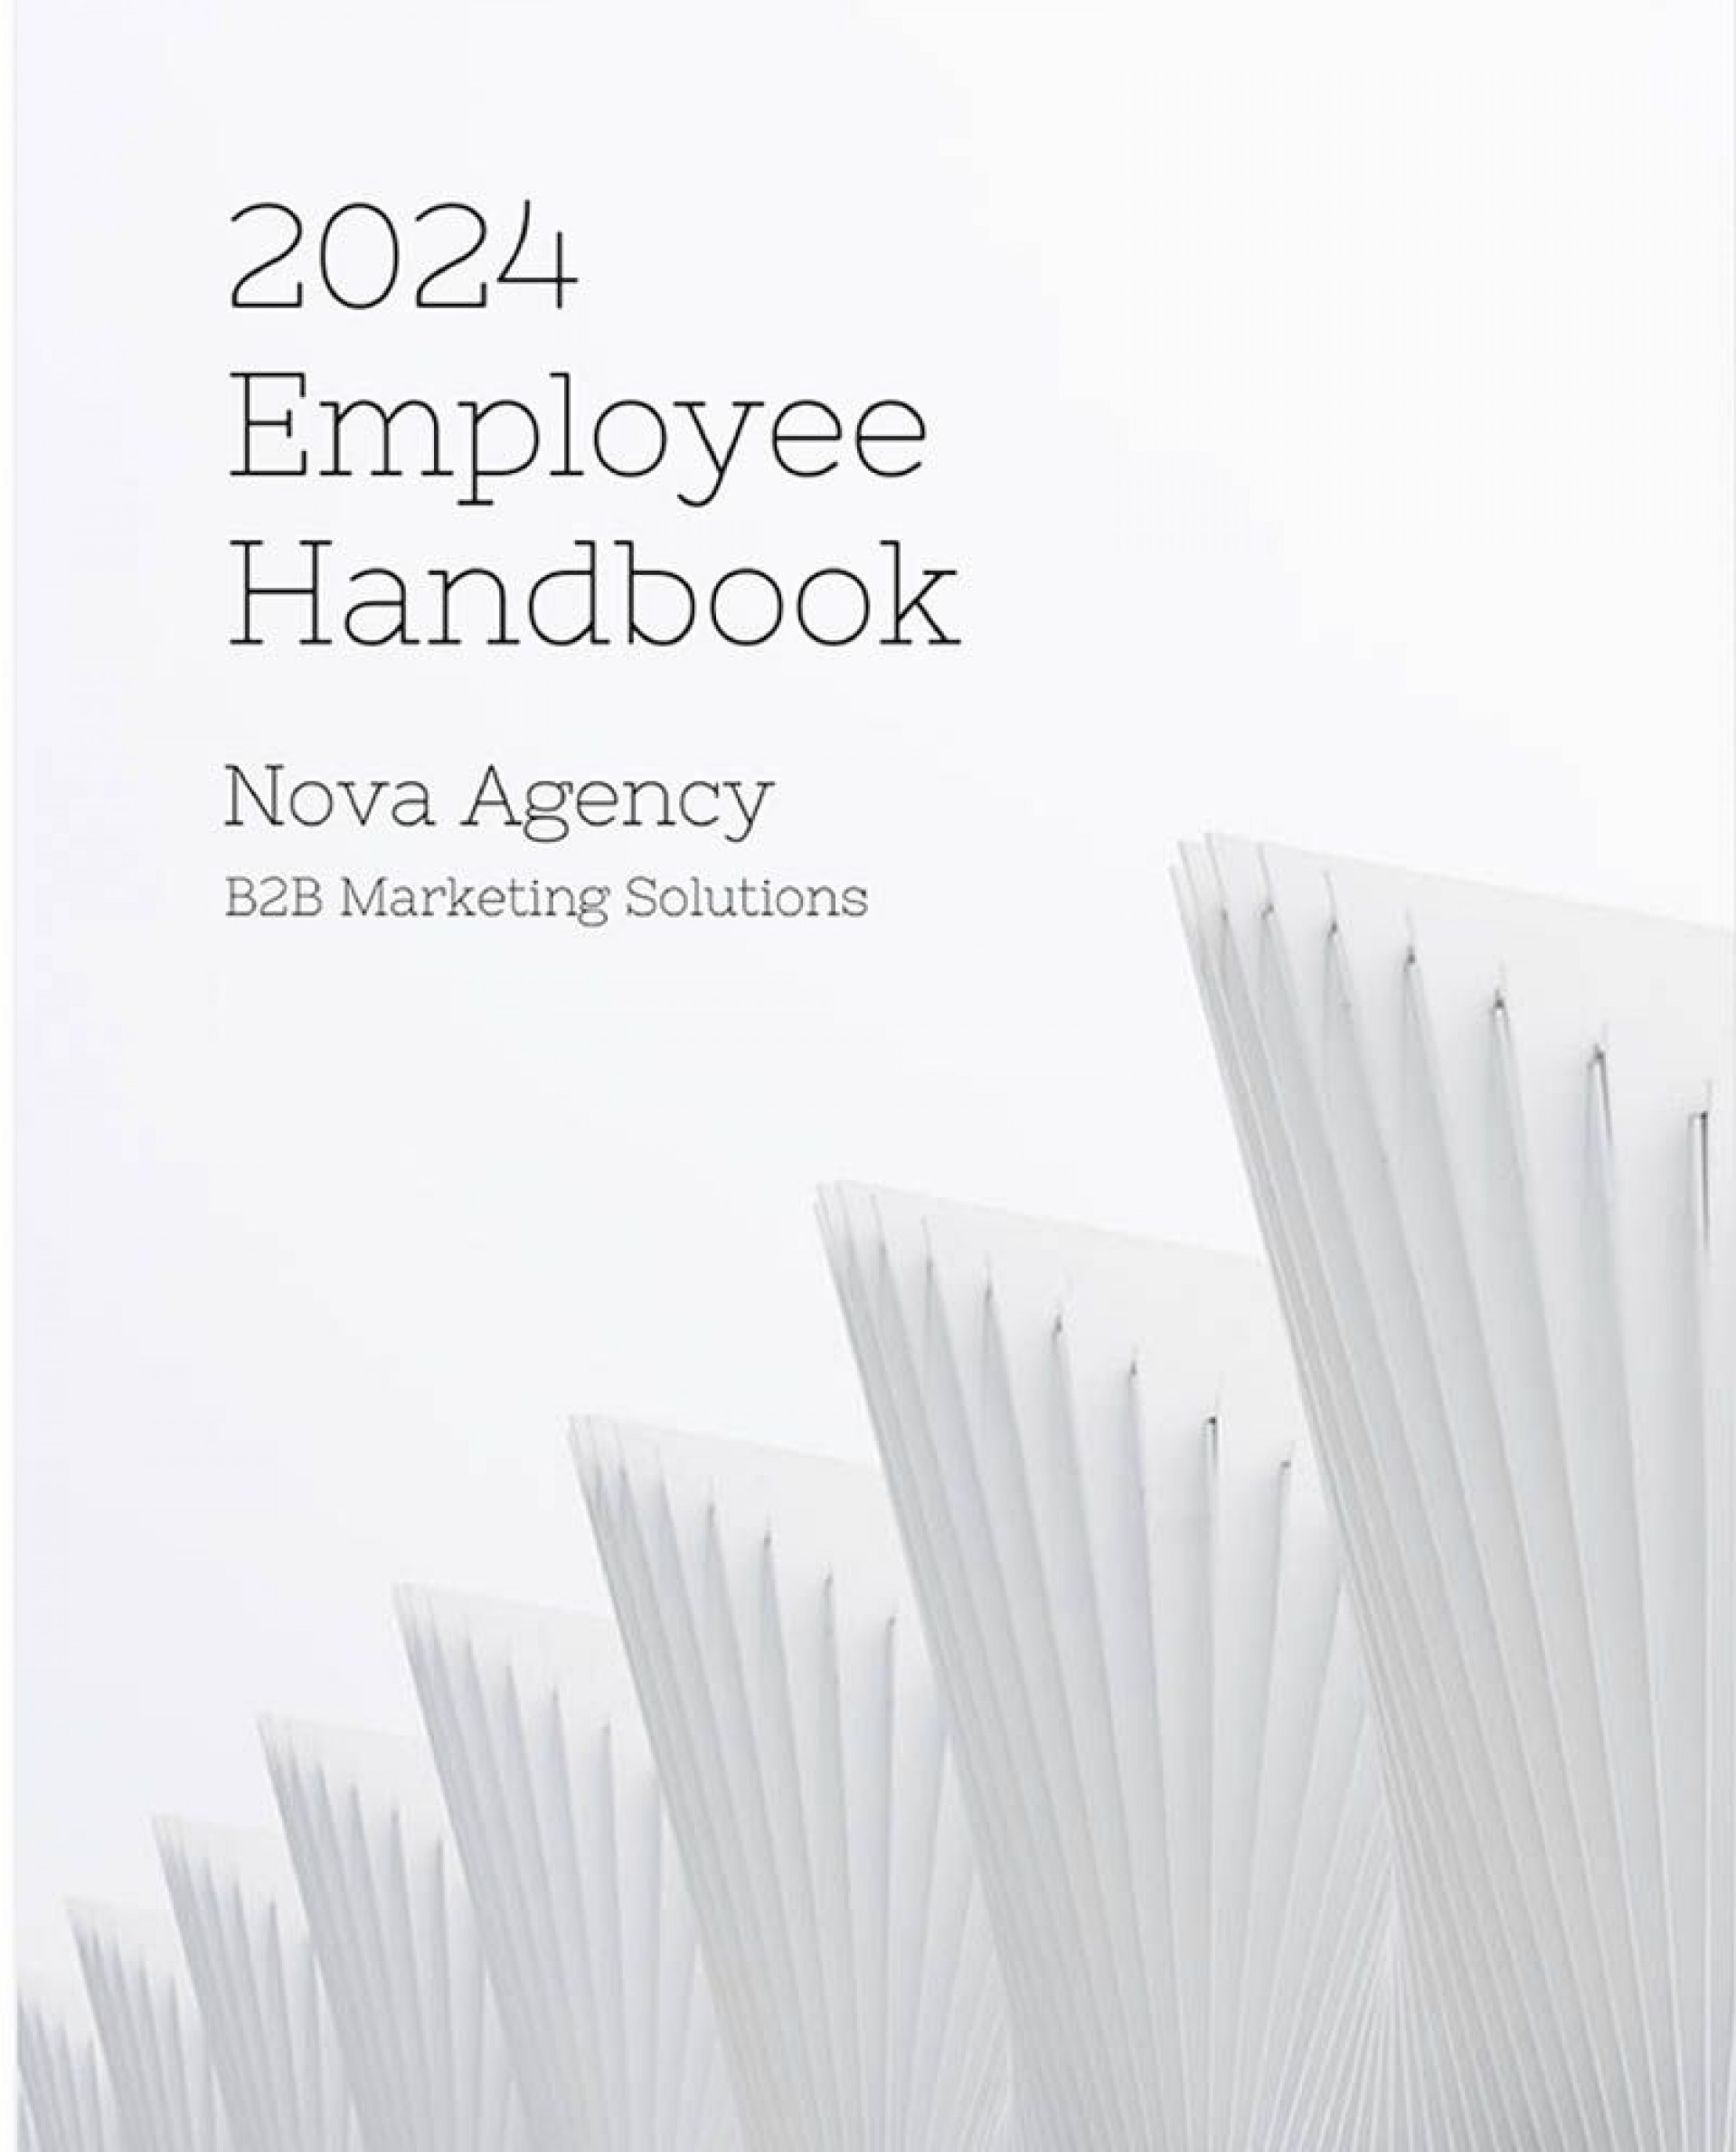 006 Excellent Free Employee Handbook Template Word Image  Sample In Training Manual1920